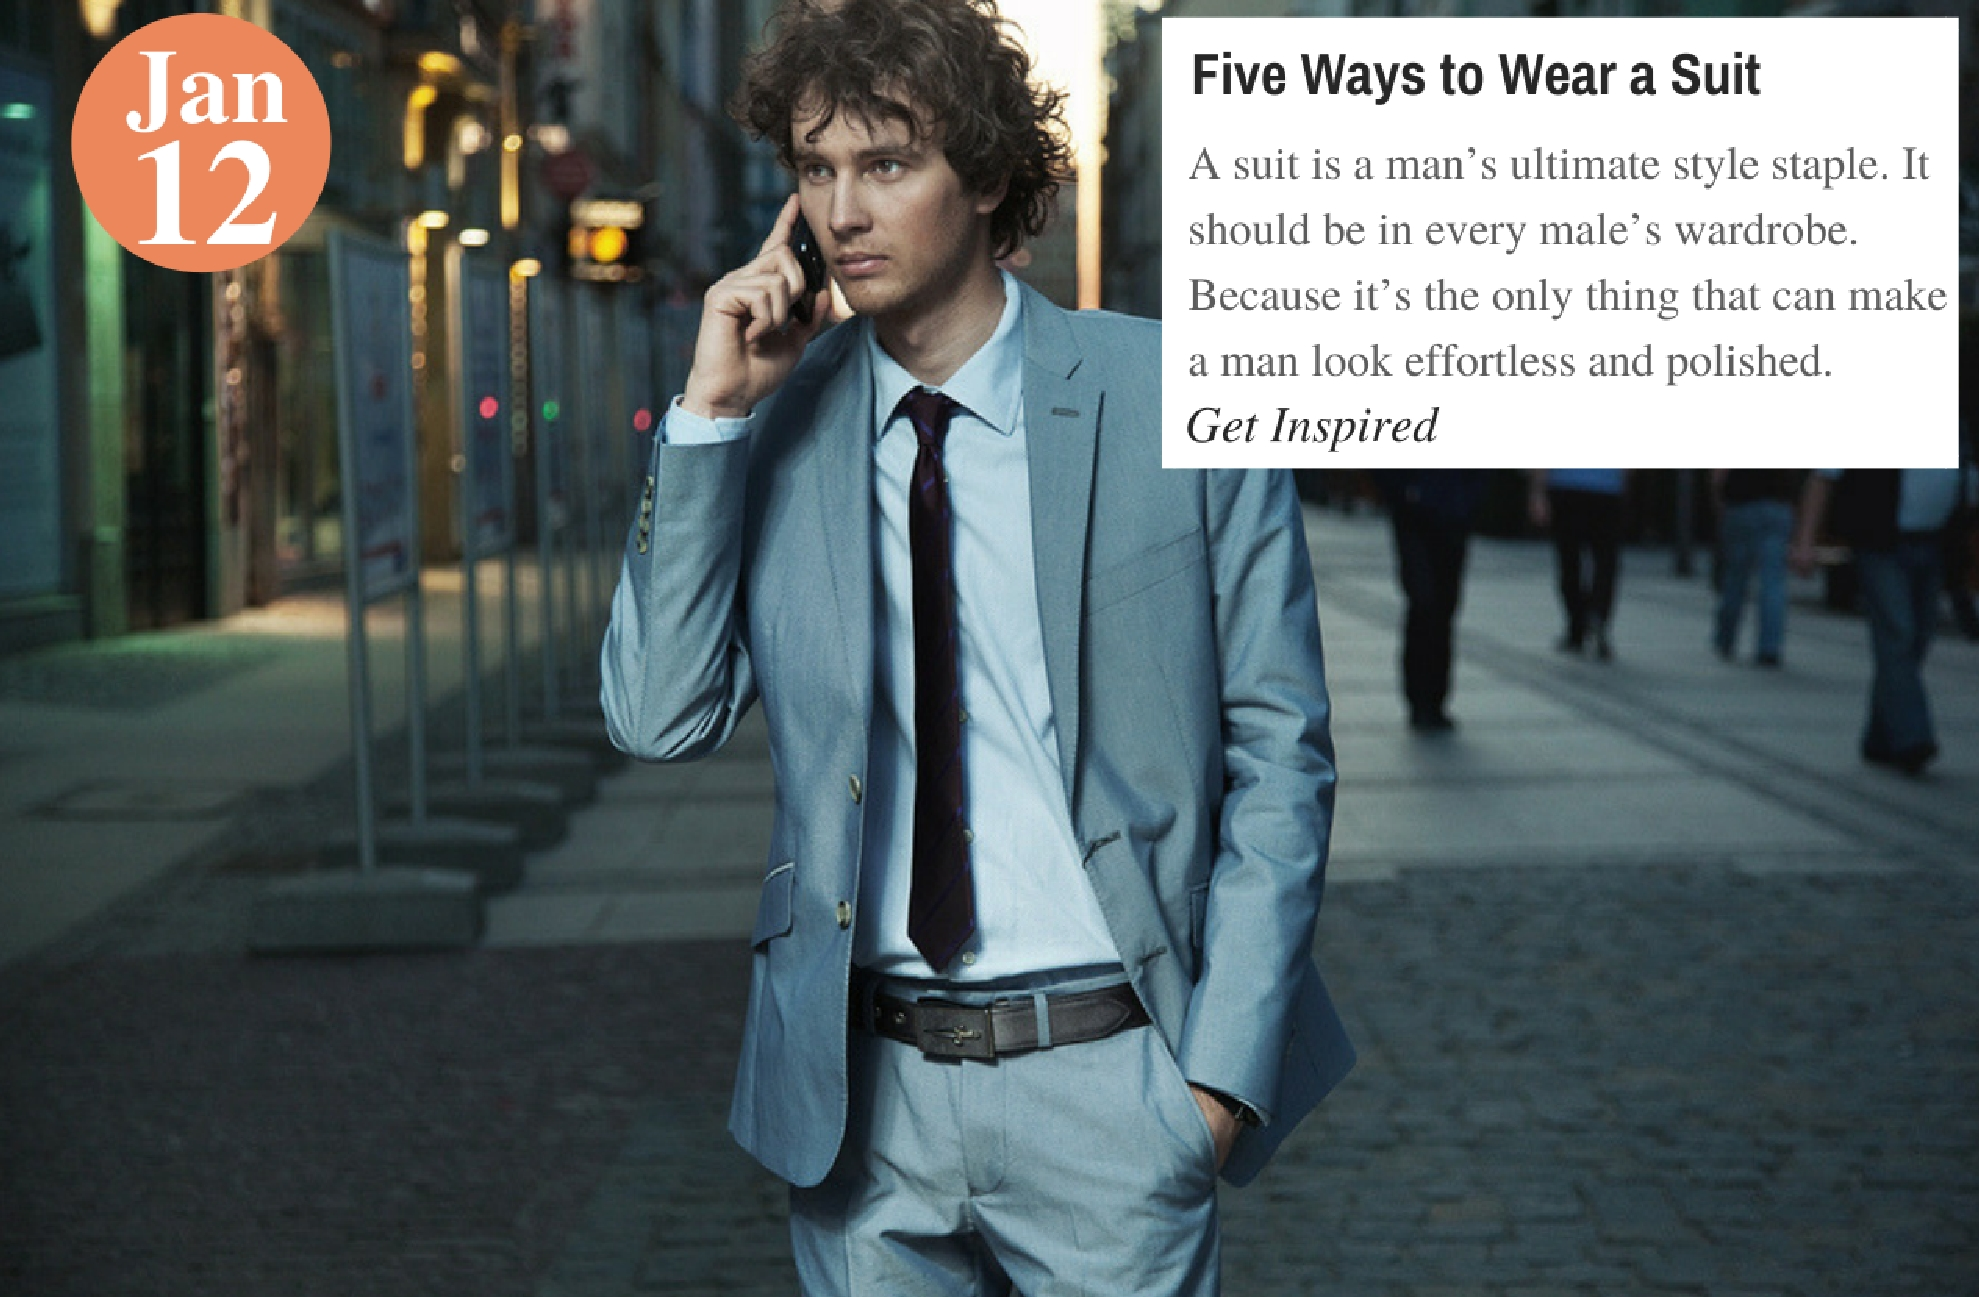 Five Ways to Wear a Suit